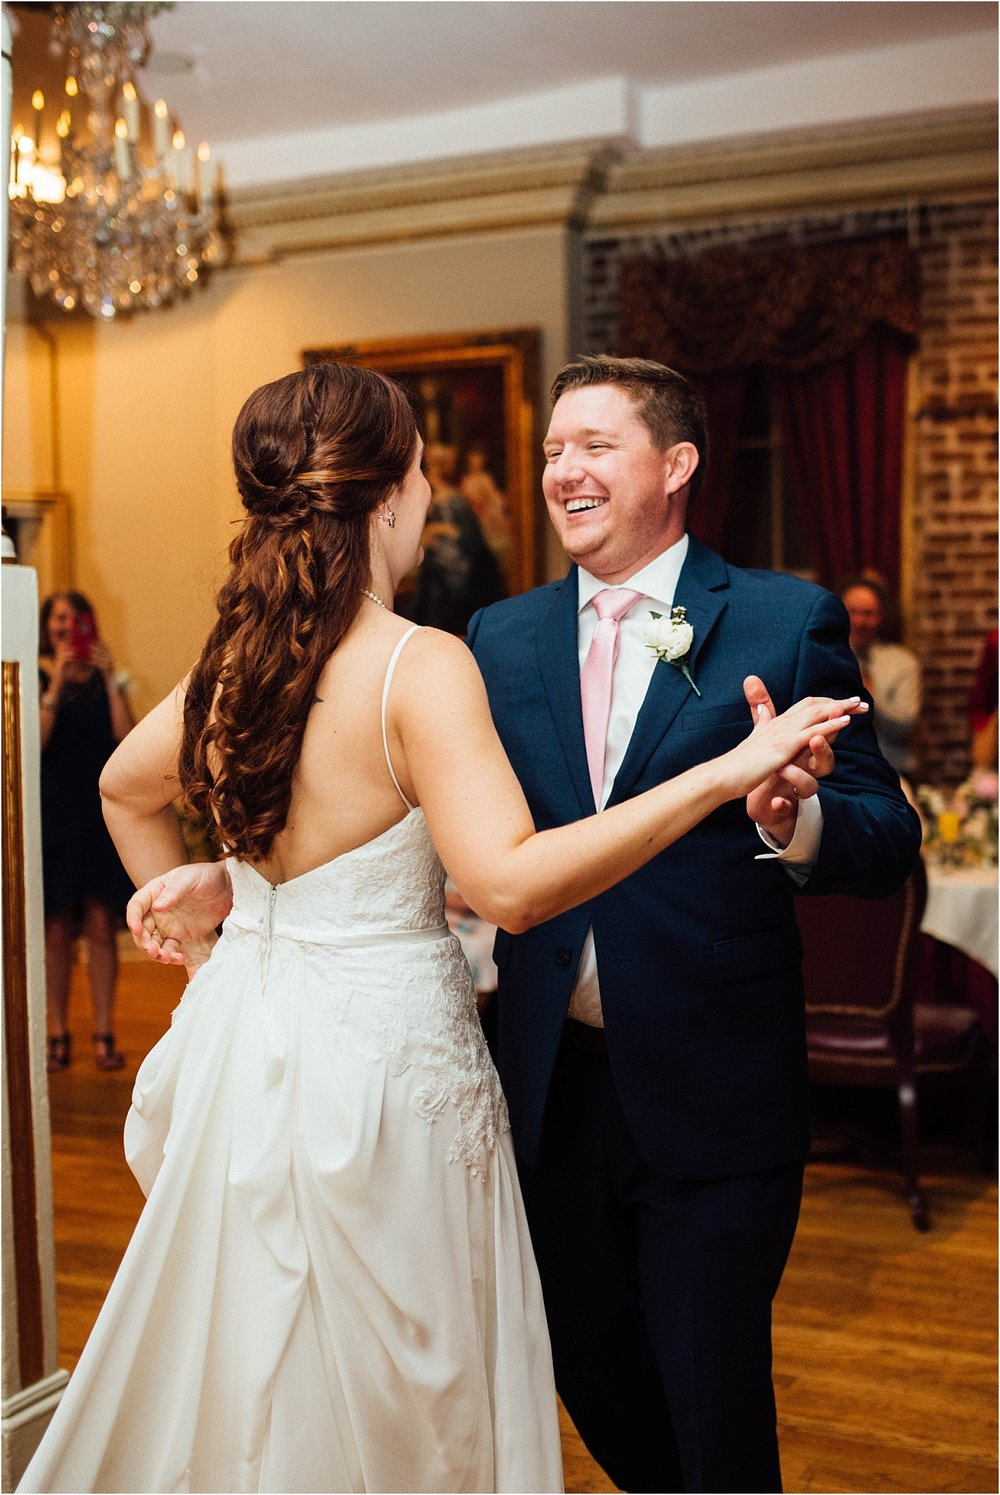 Amy + Chris-Pharmacy-Museum-Muriel's-New-Orleans-Wedding-Photos_Gabby Chapin_Prints_00494_BLOG.jpg